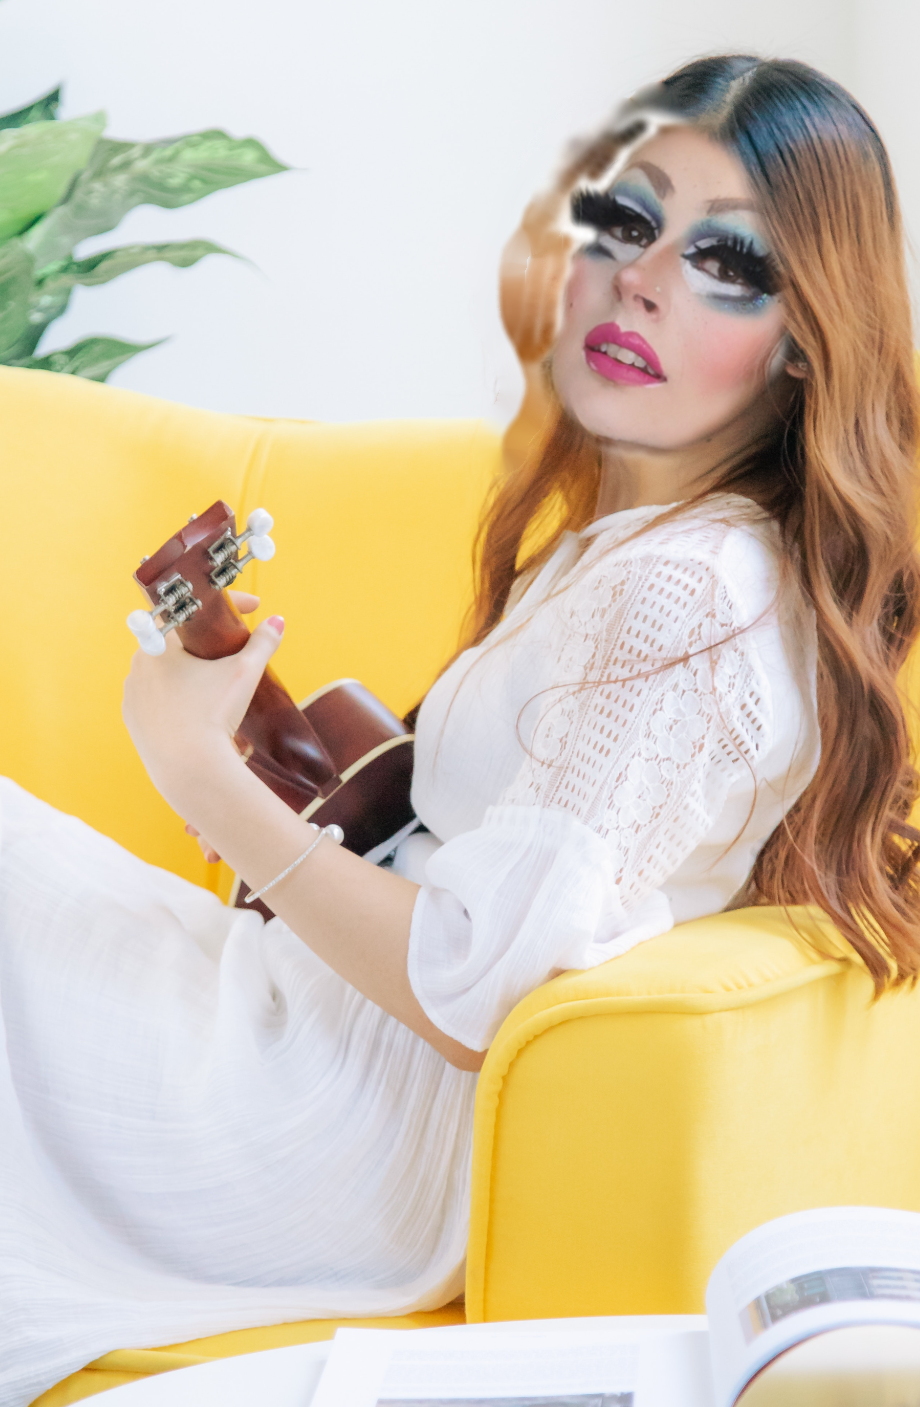 Photoshopped image showing Amber's face on the body of a girl playing ukulele and reading from a book